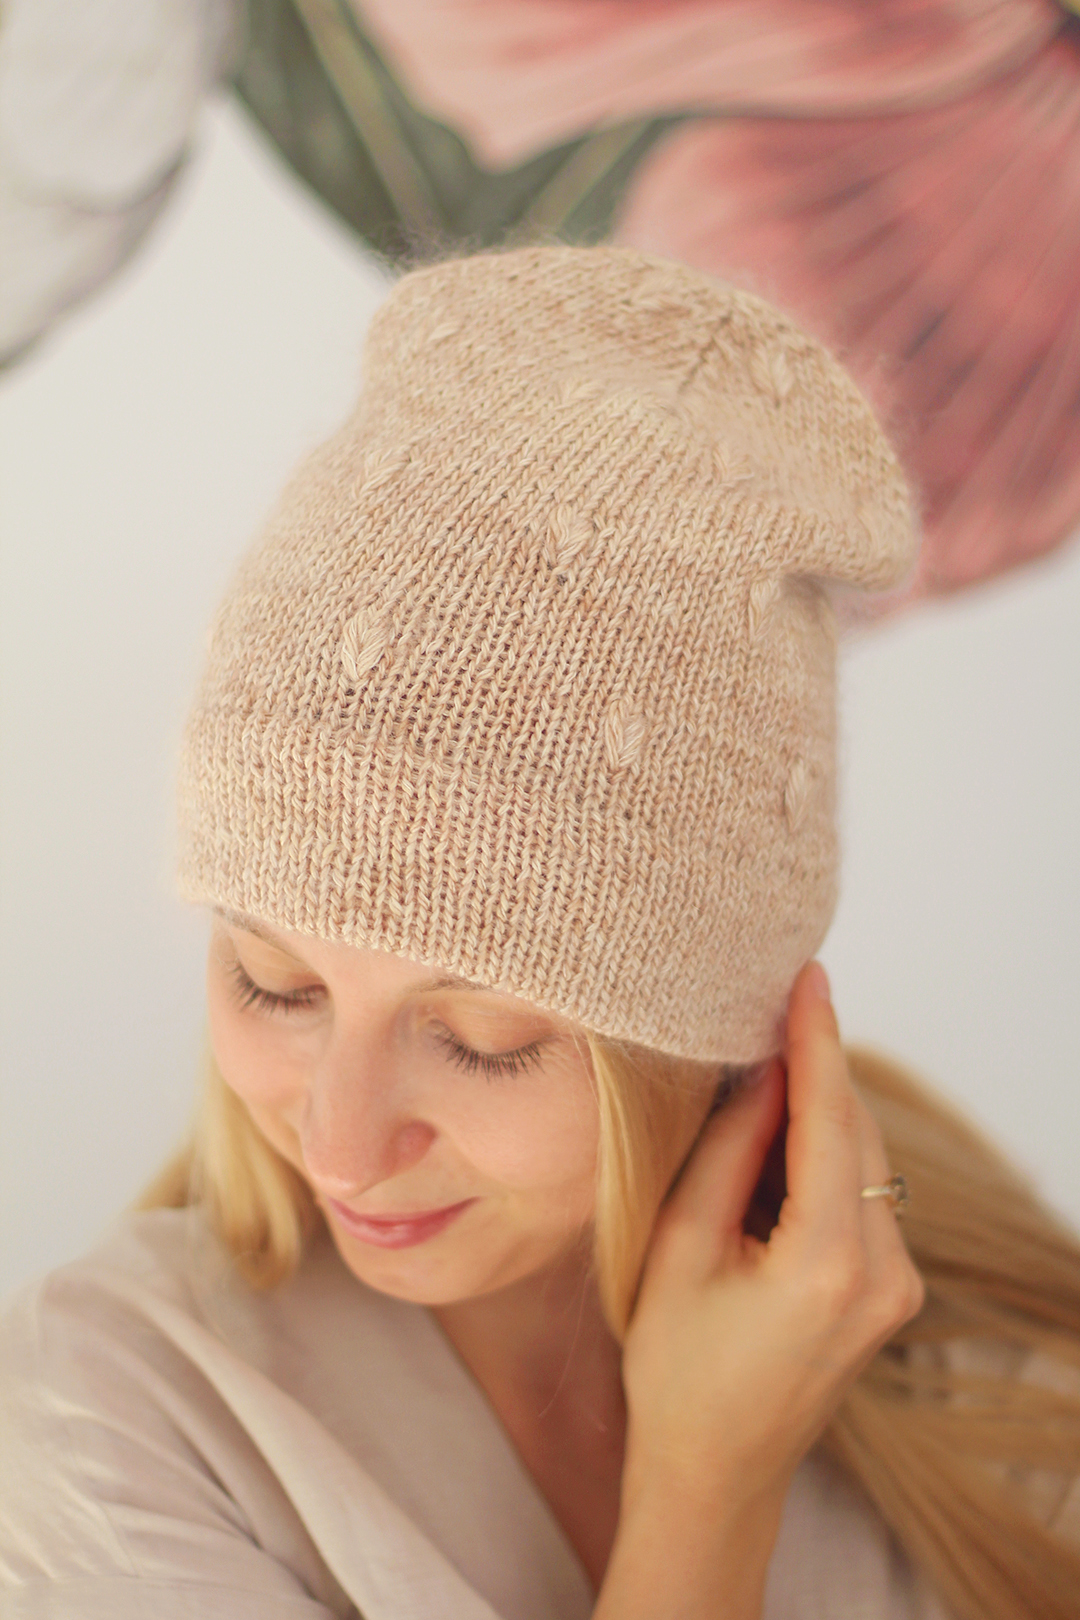 A handmade, knitted hat with a textured stitich pattern